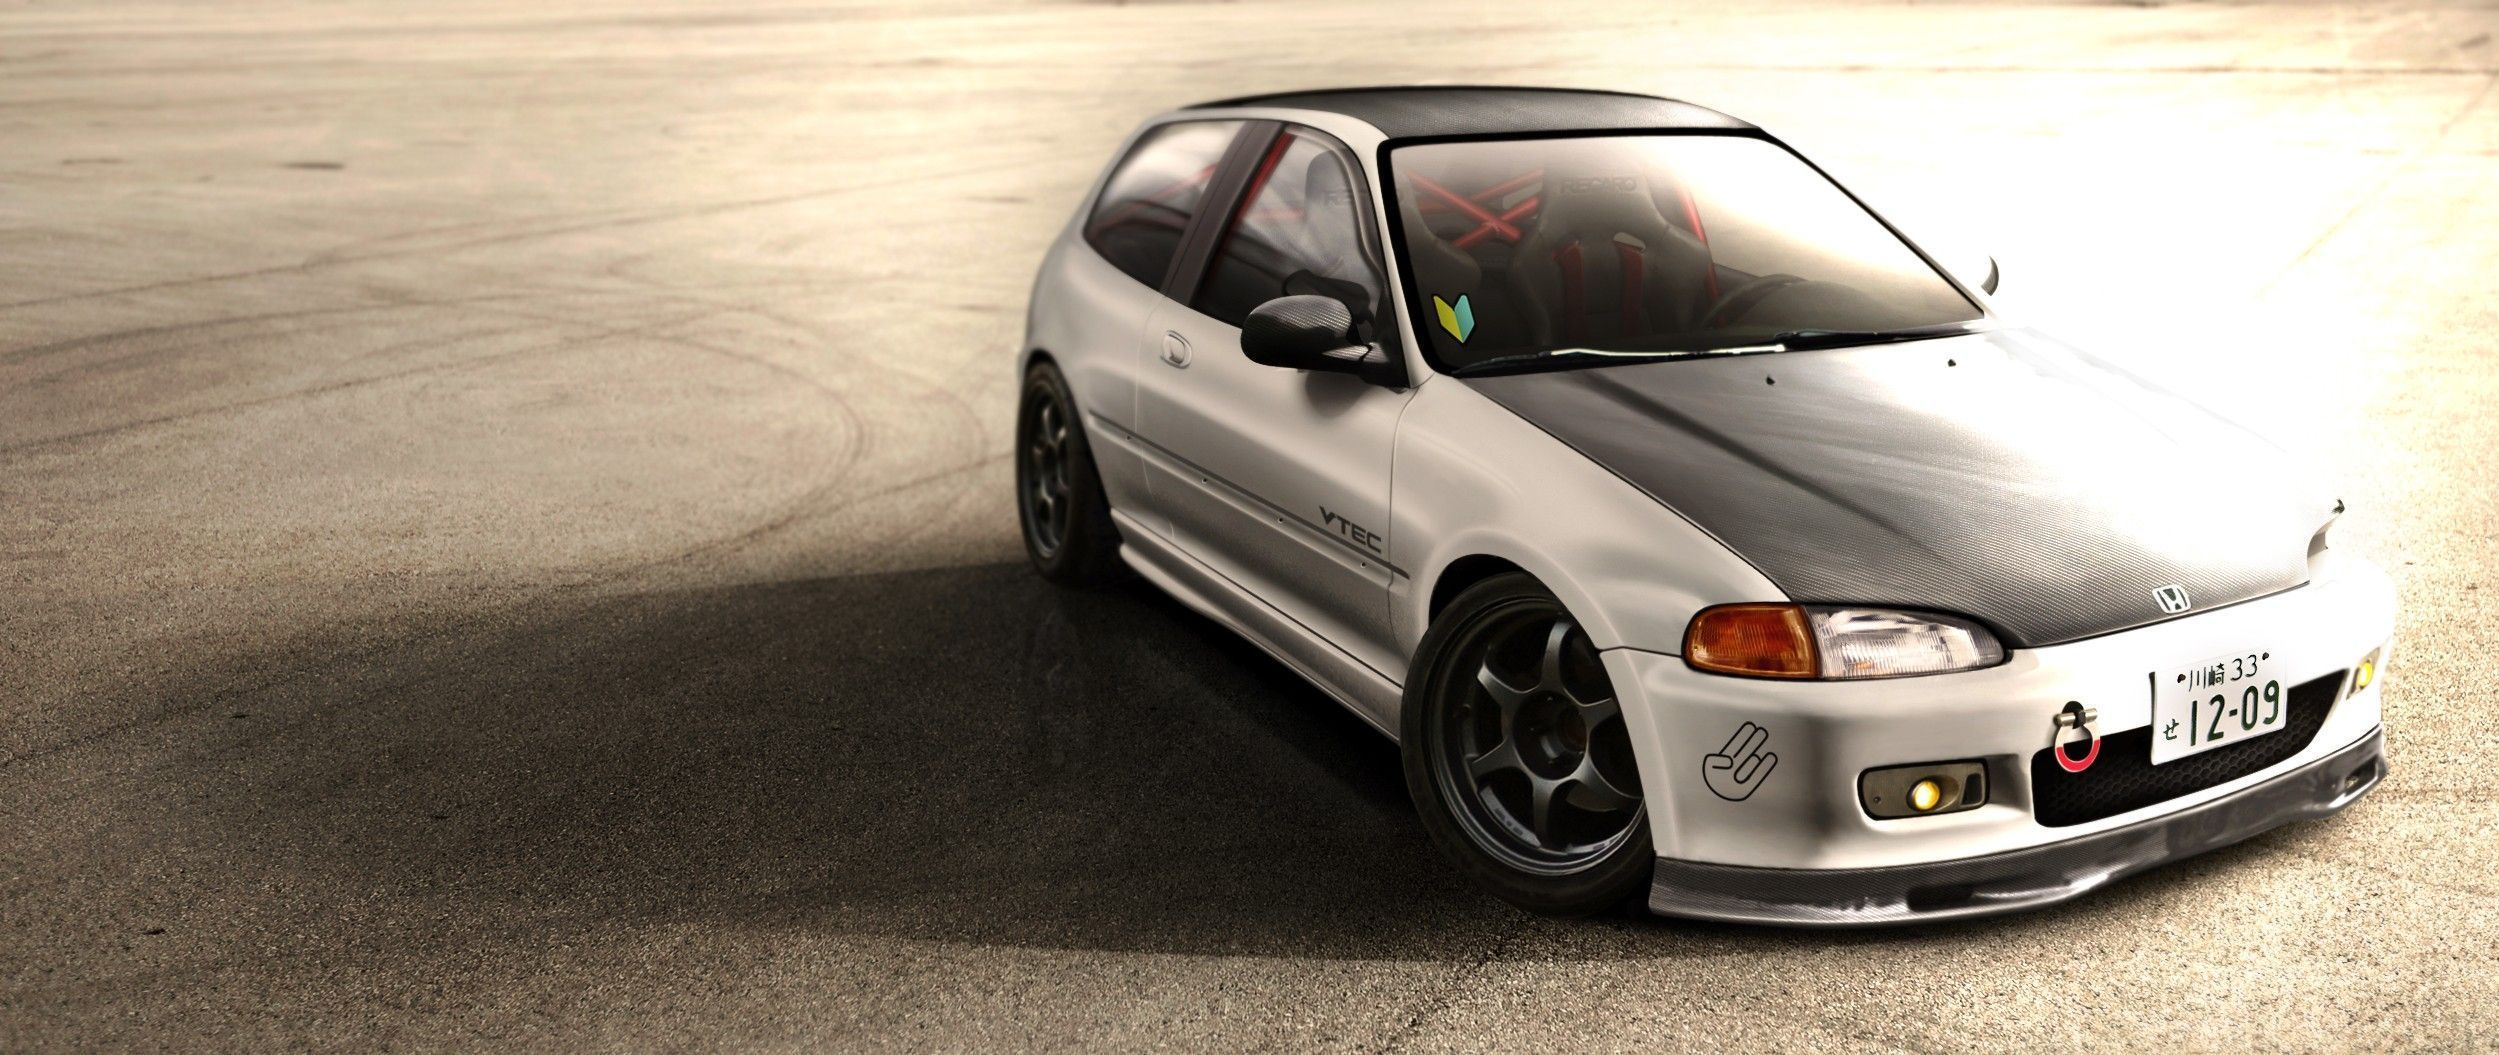 Attrayant Honda Civic Jdm Wallpaper IPhone   Image #108 | Download Wallpaper |  Pinterest | Honda Civic